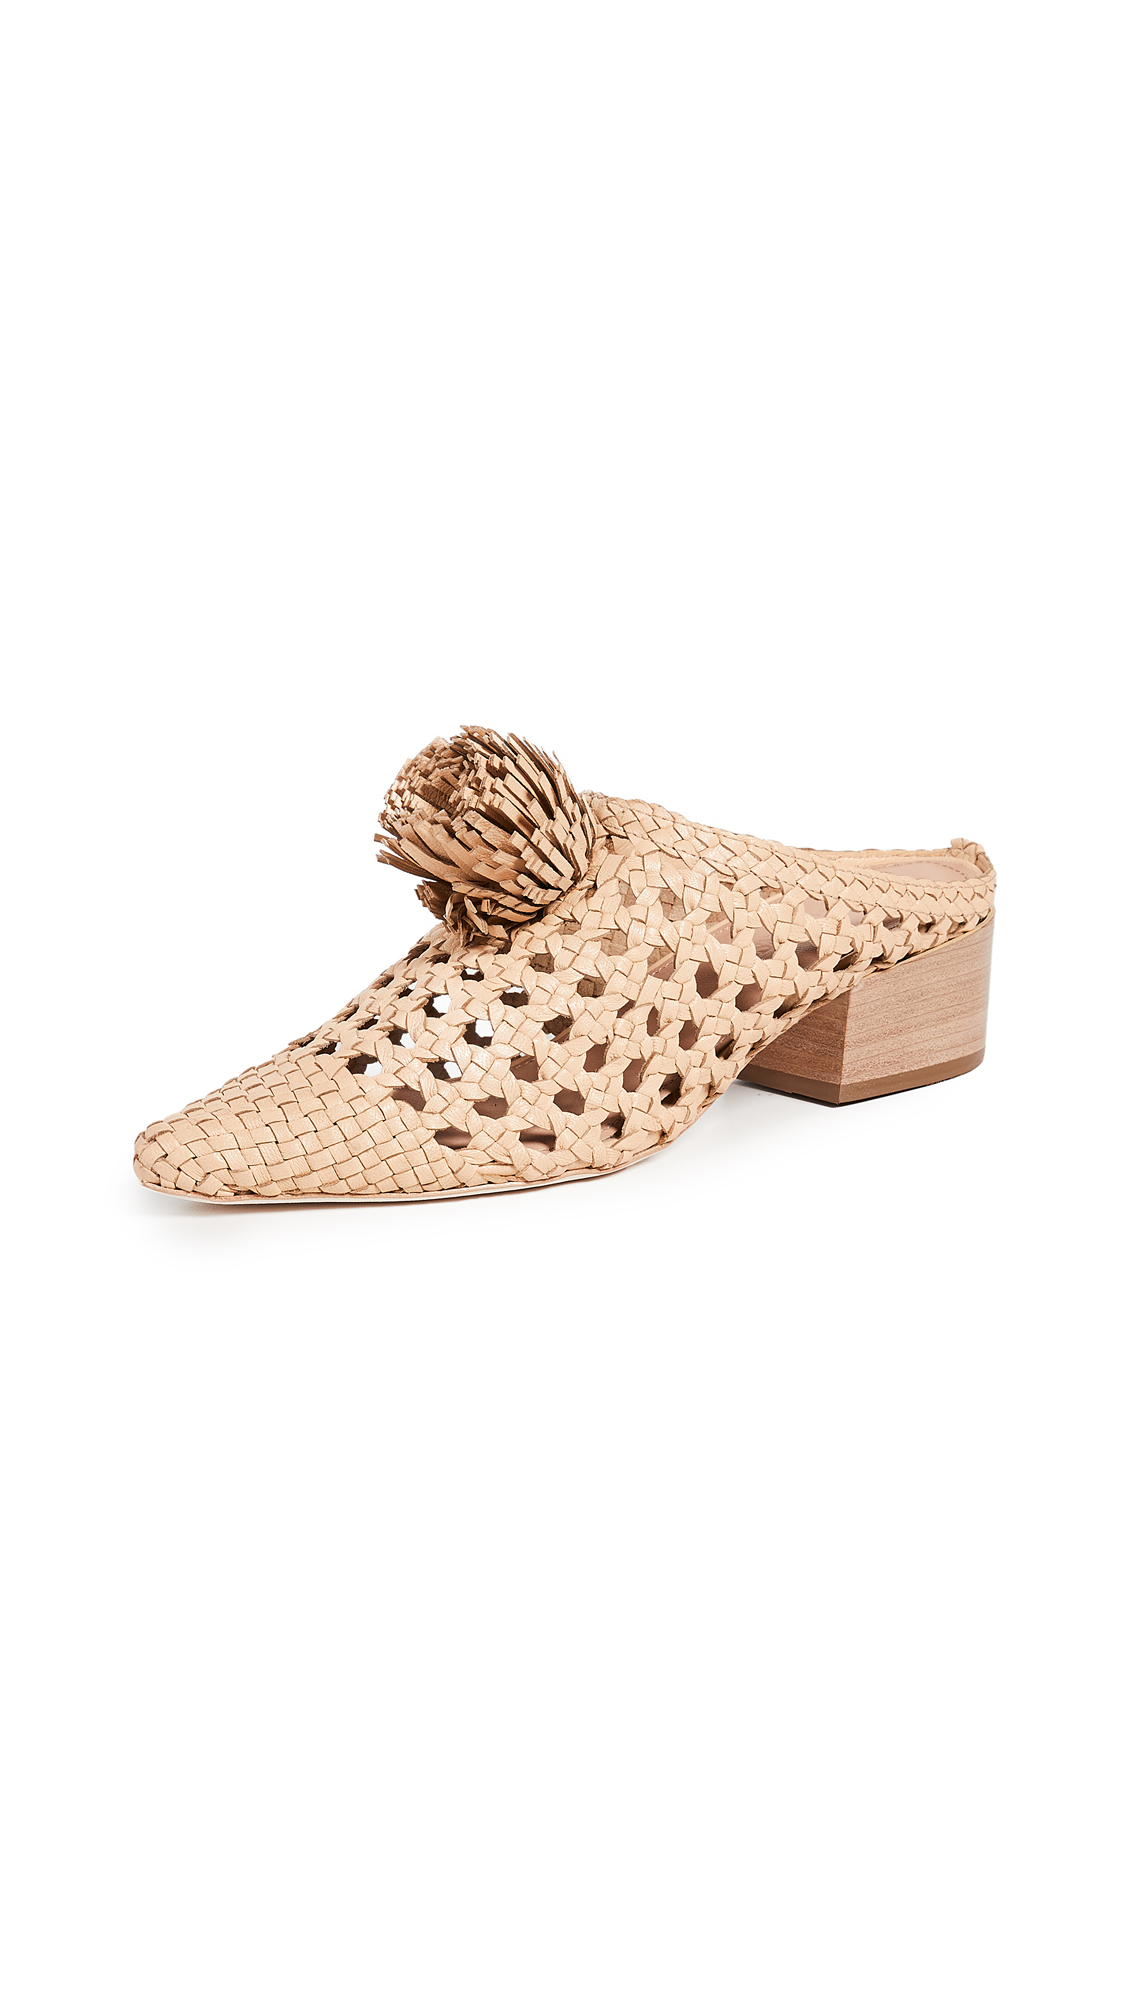 Ulla Johnson Paloma Mules - Natural